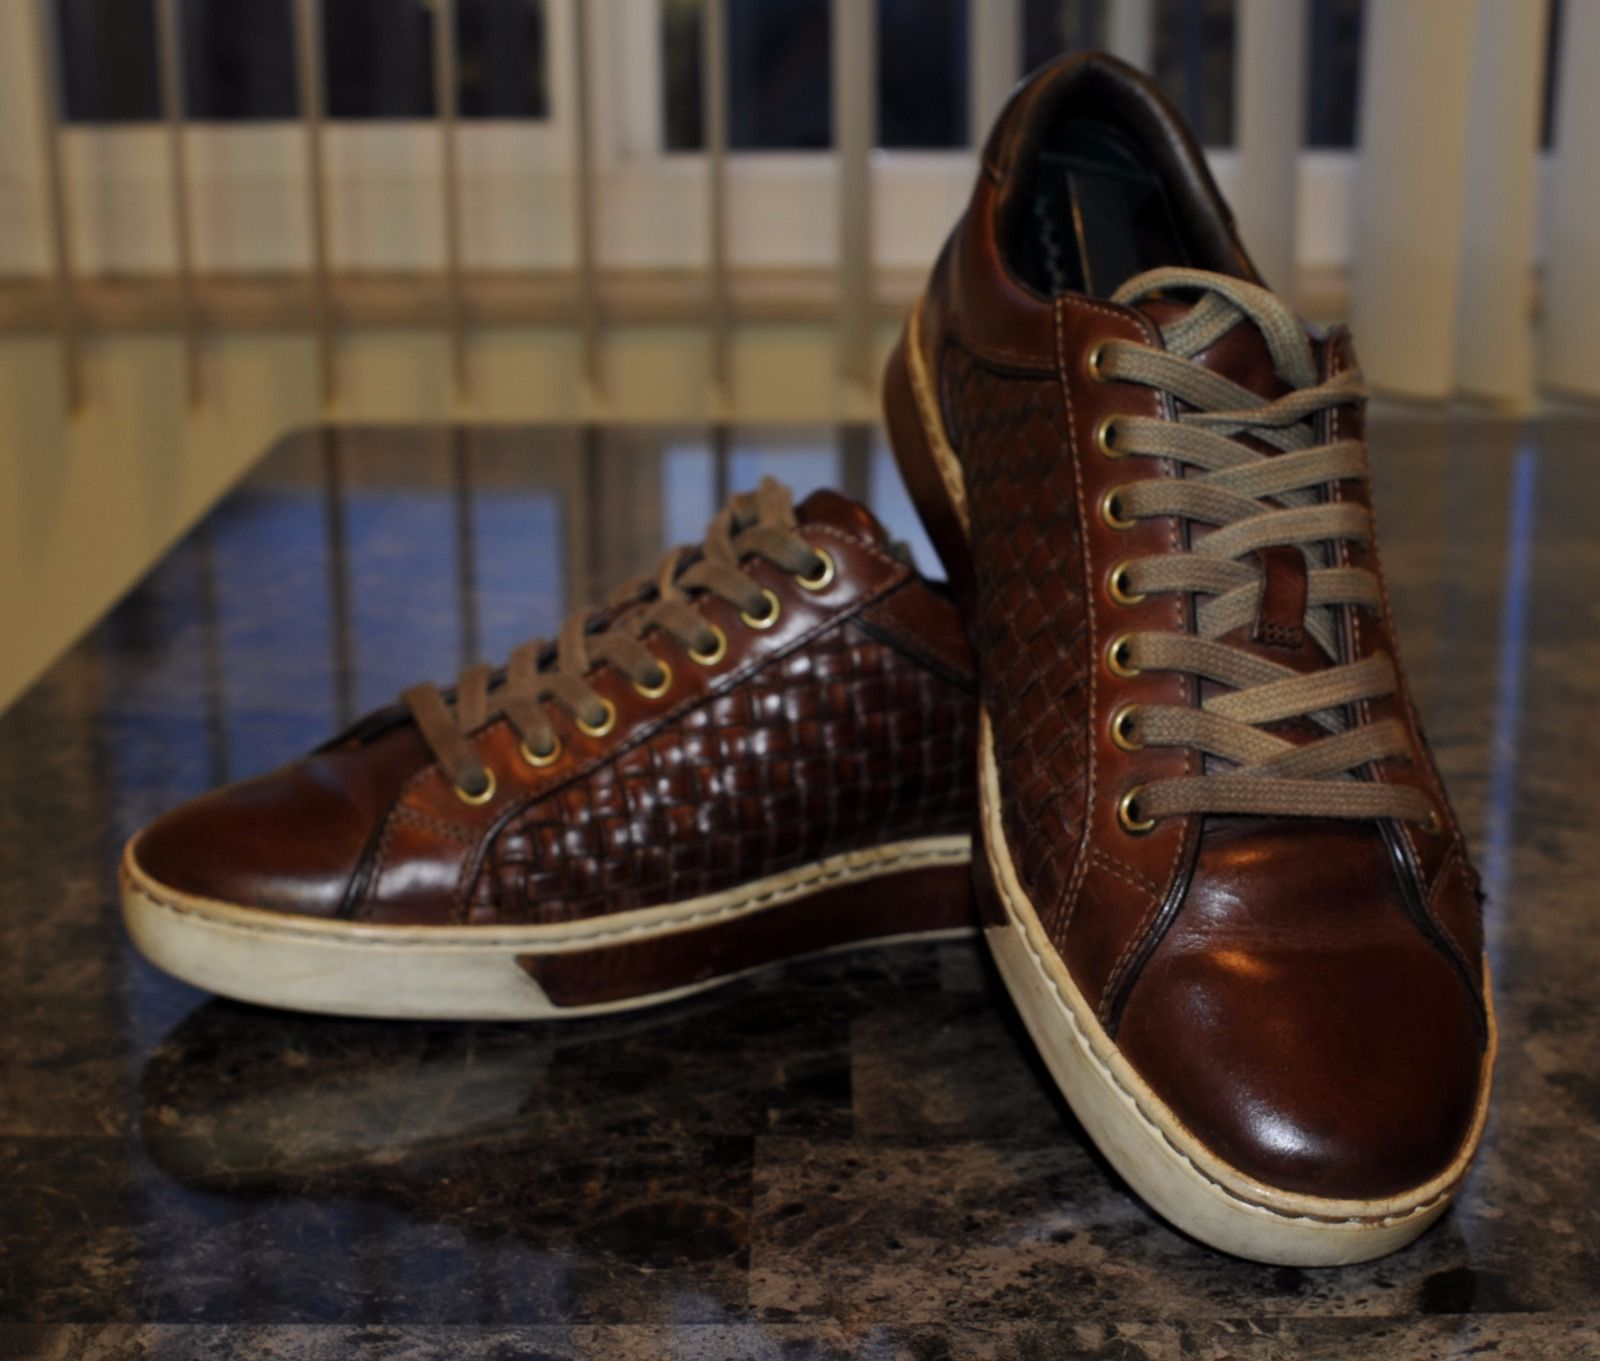 Cole Haan Men's Fashion Sneakers G